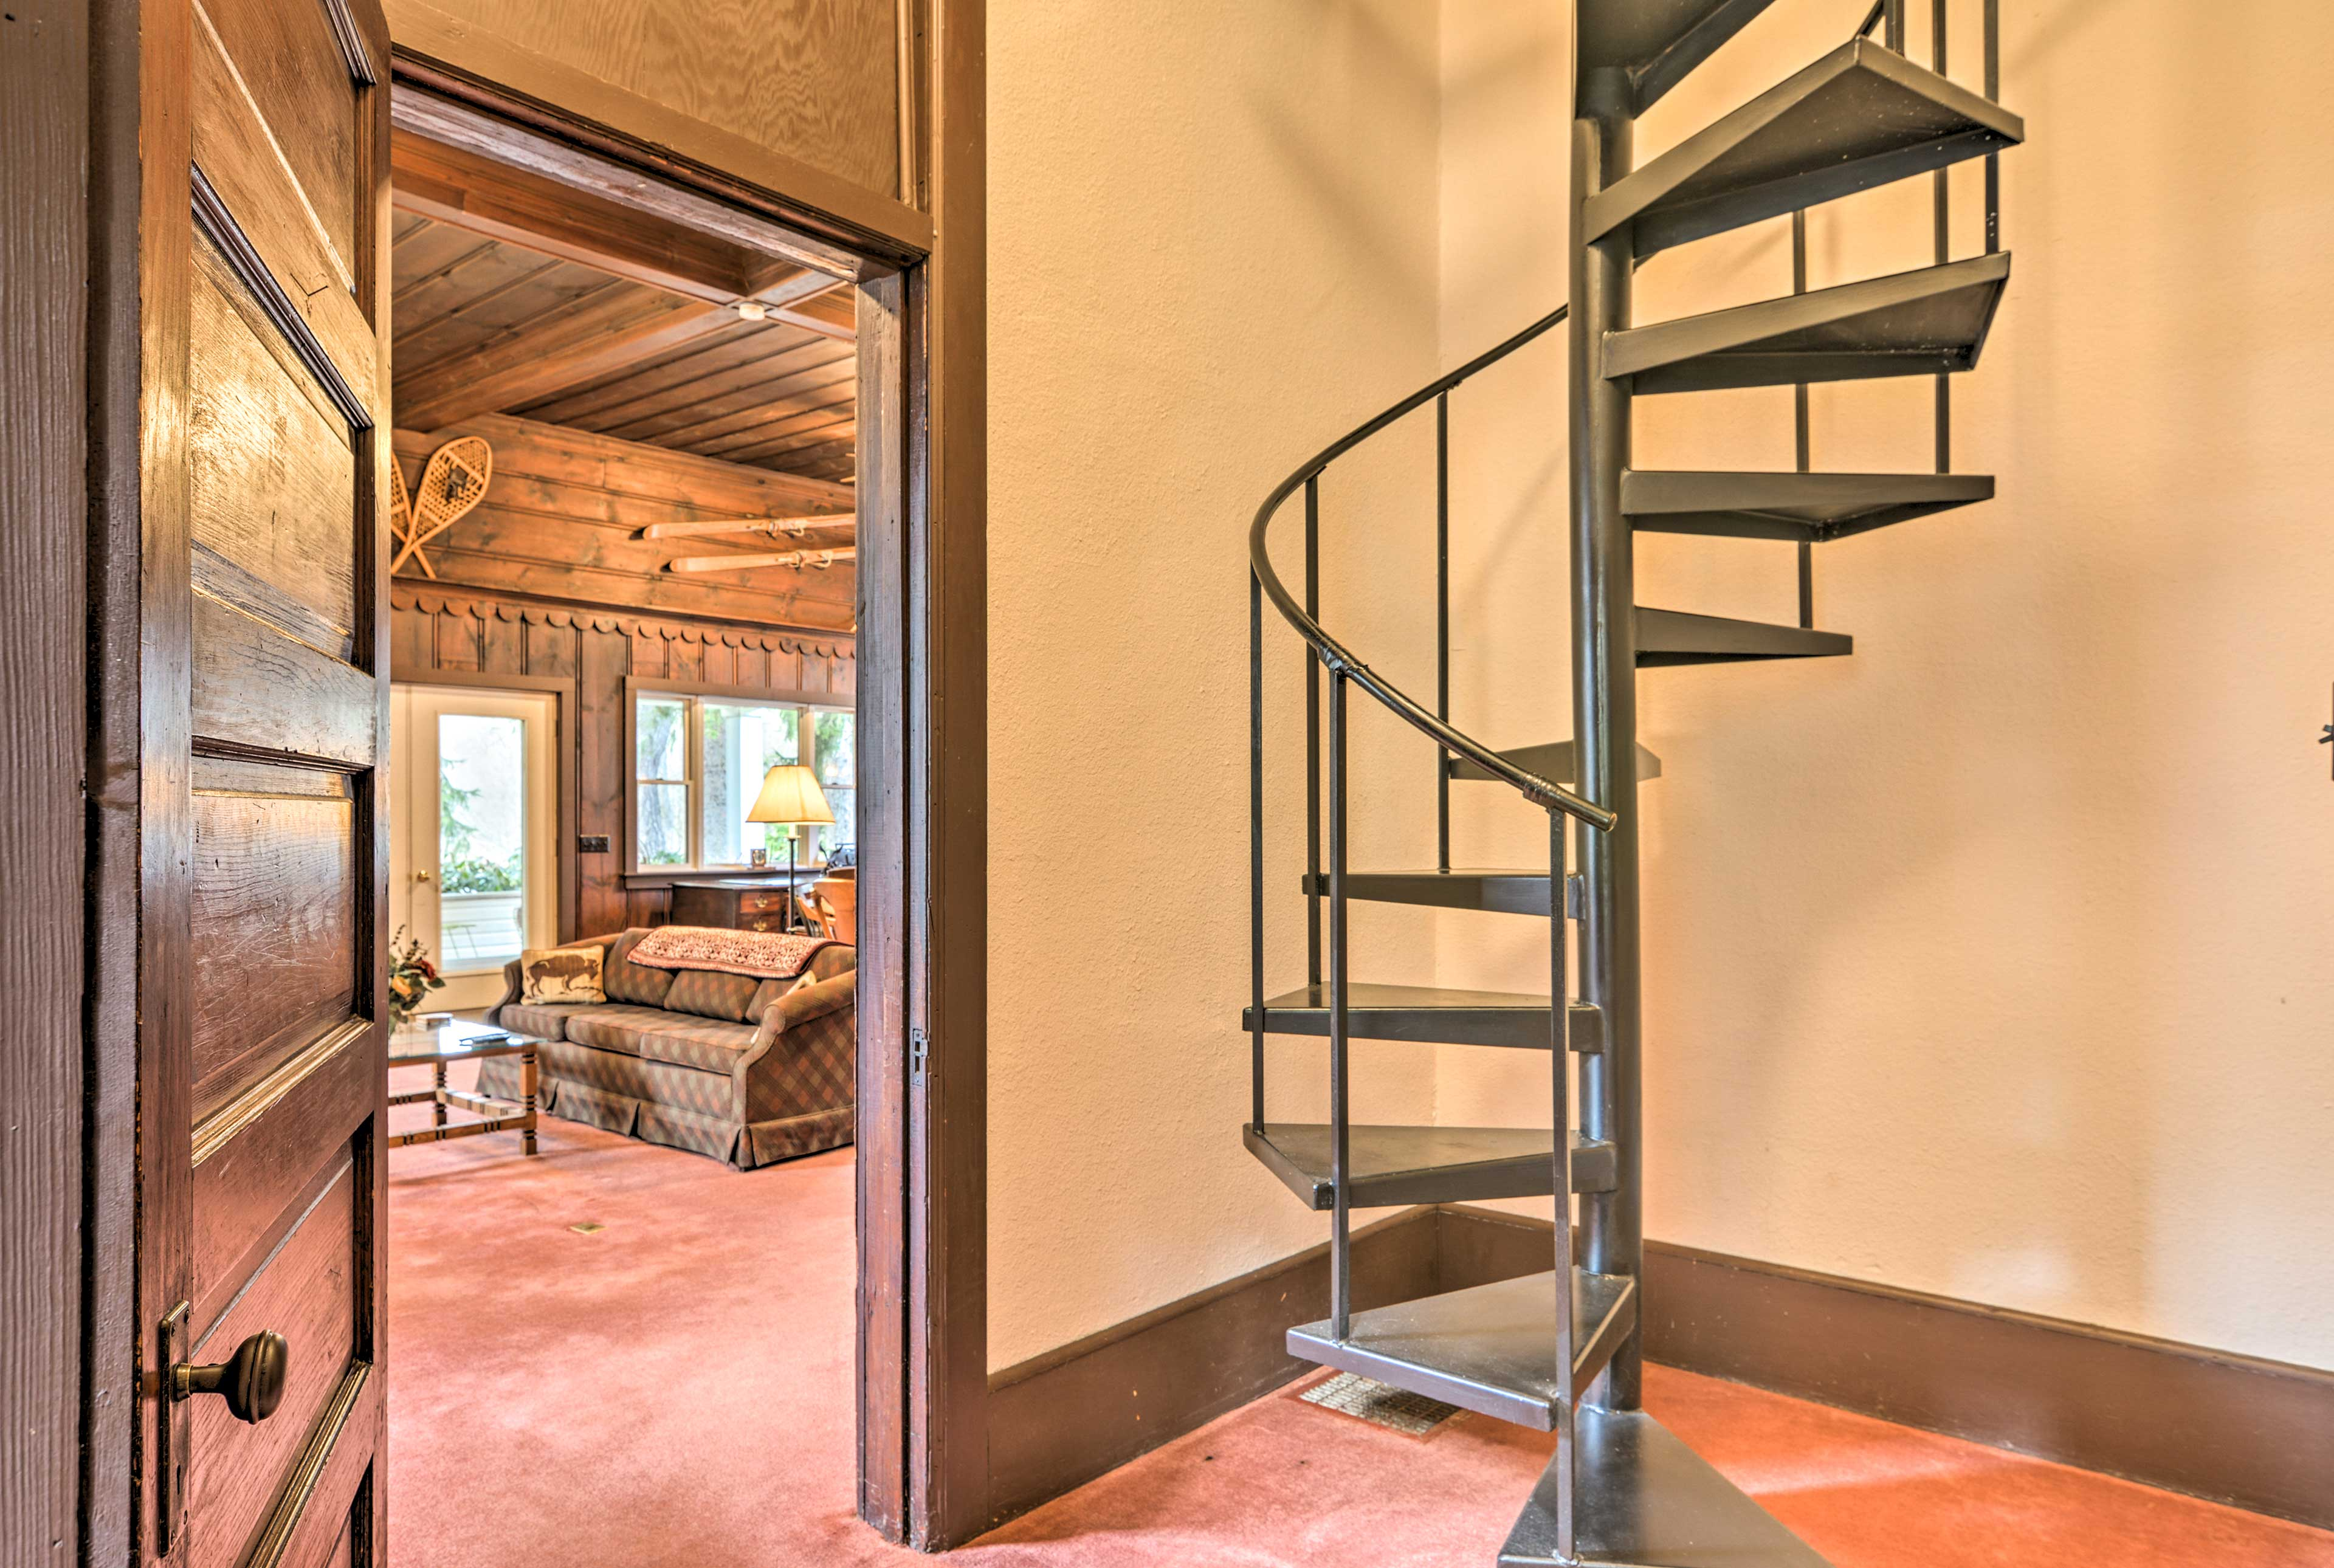 This spiral staircase leads upstairs.